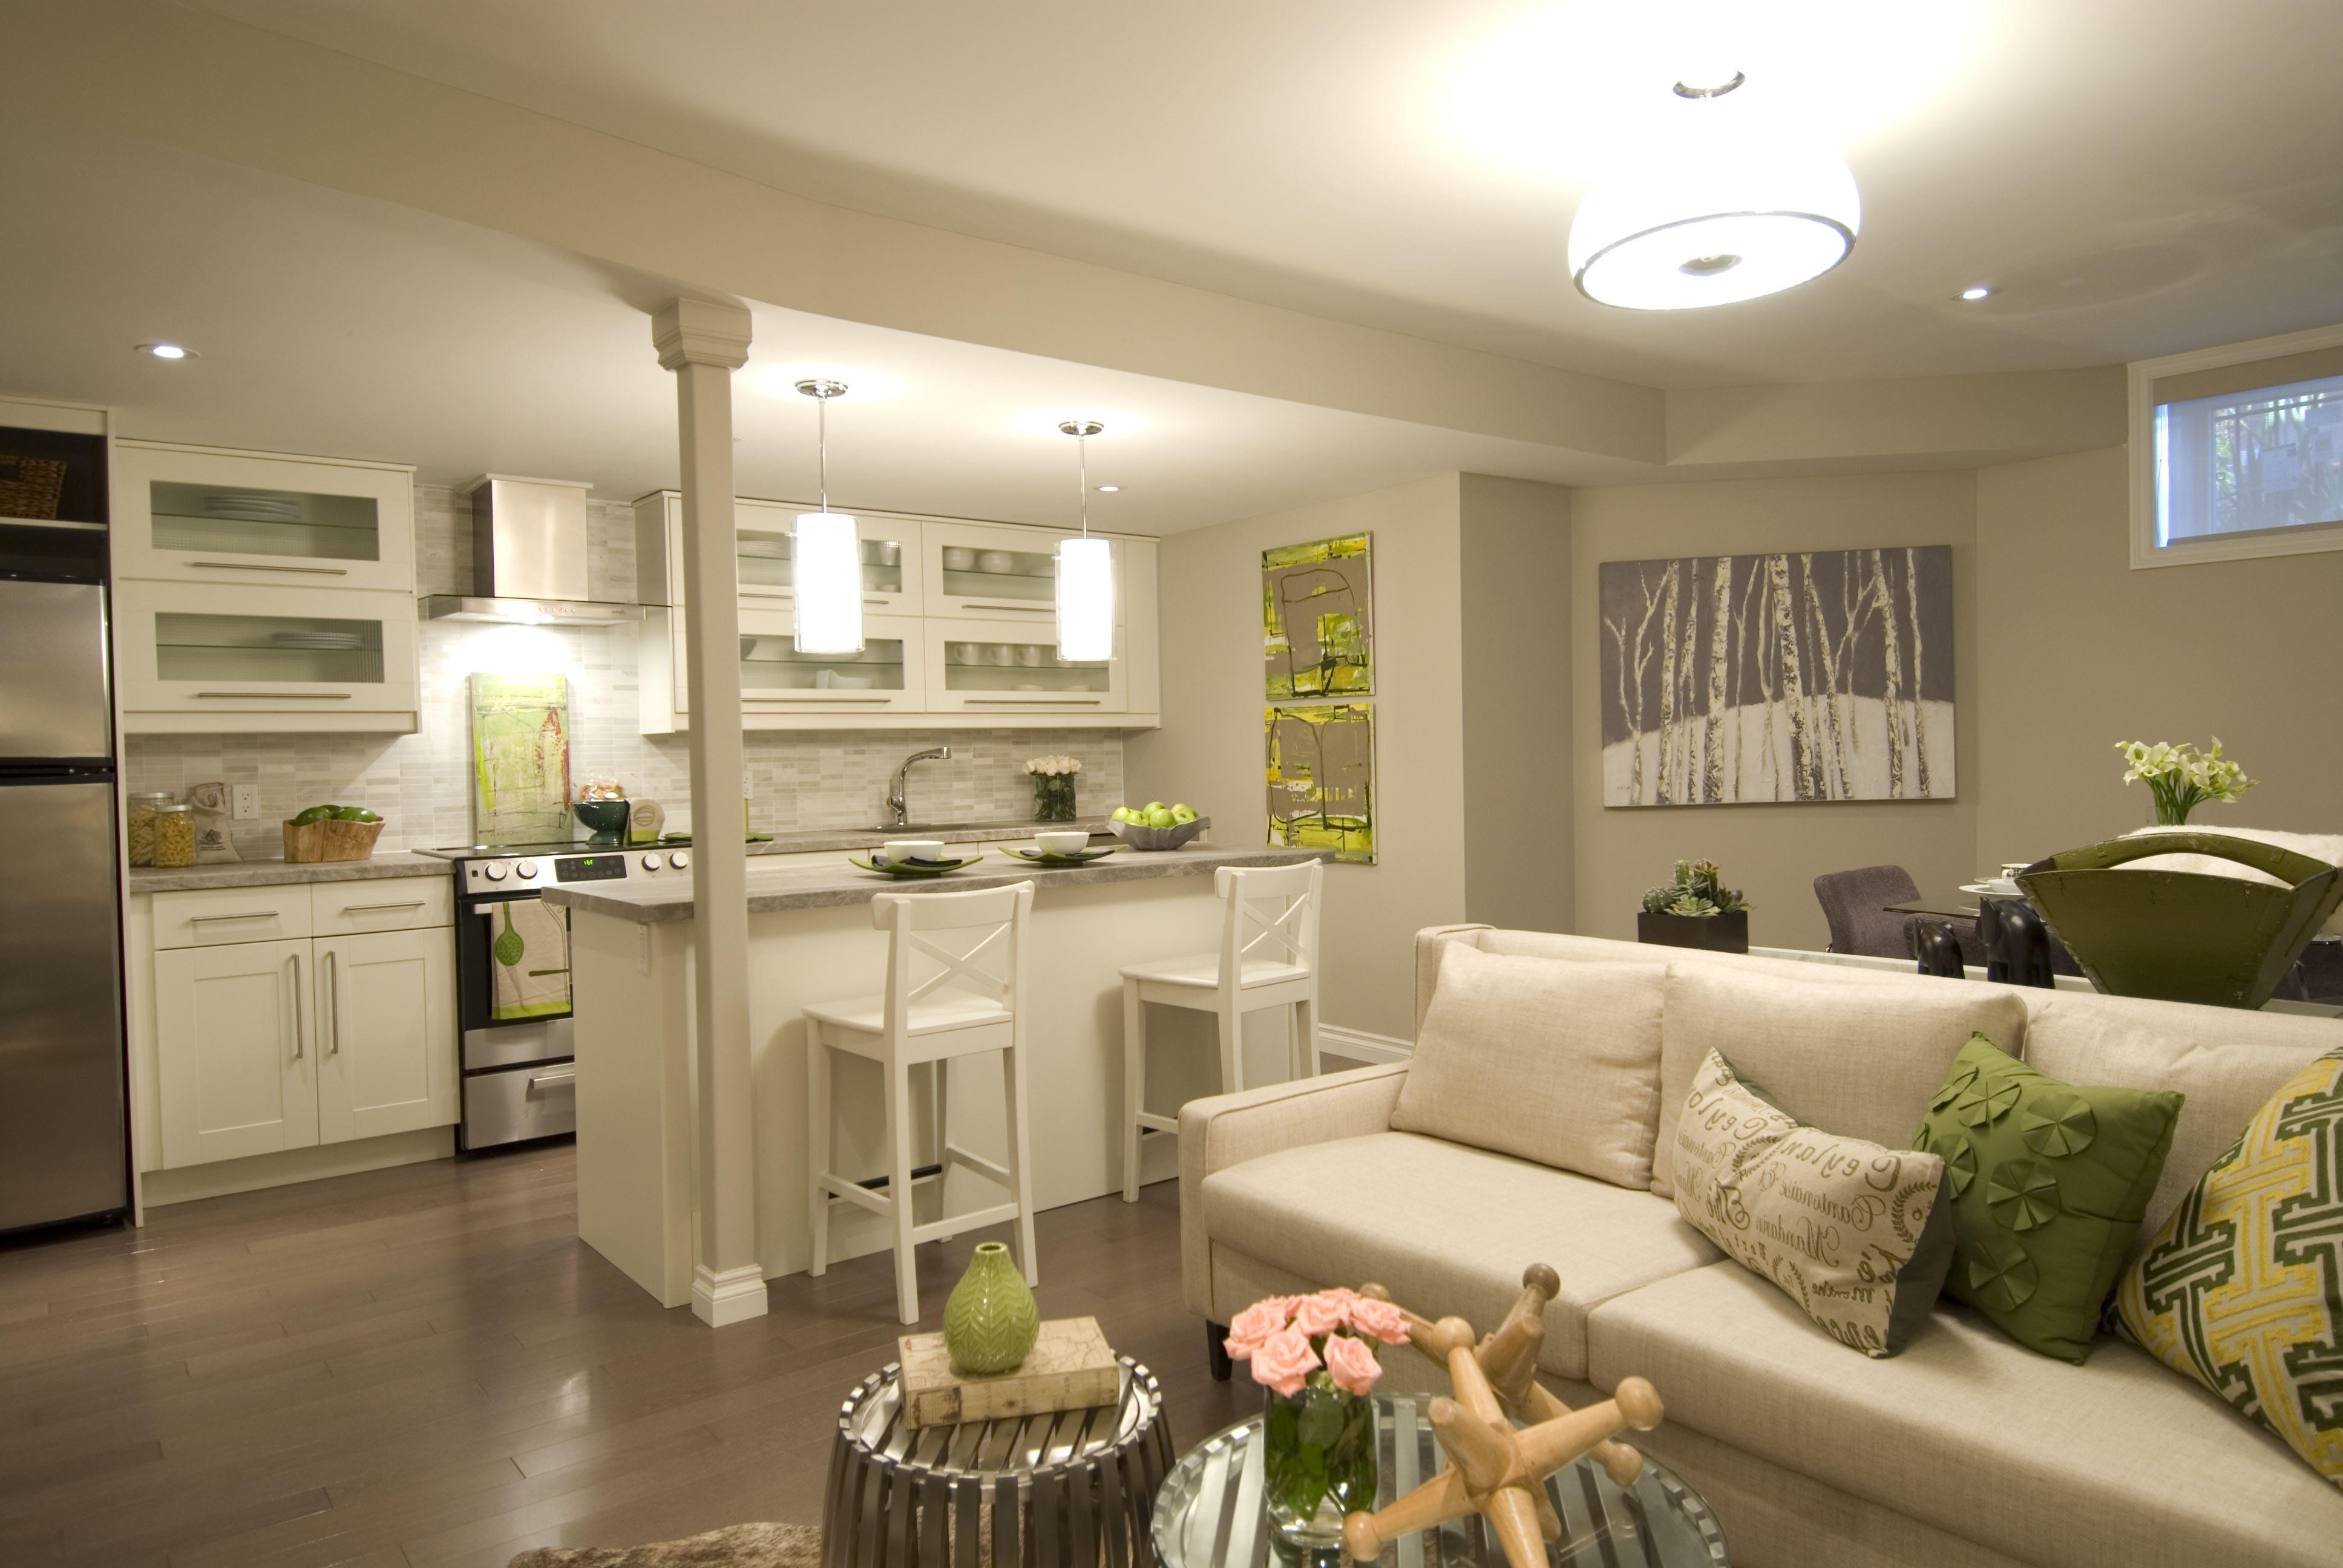 Kitchens Living Rooms Combined How It Works Storiestrending Com